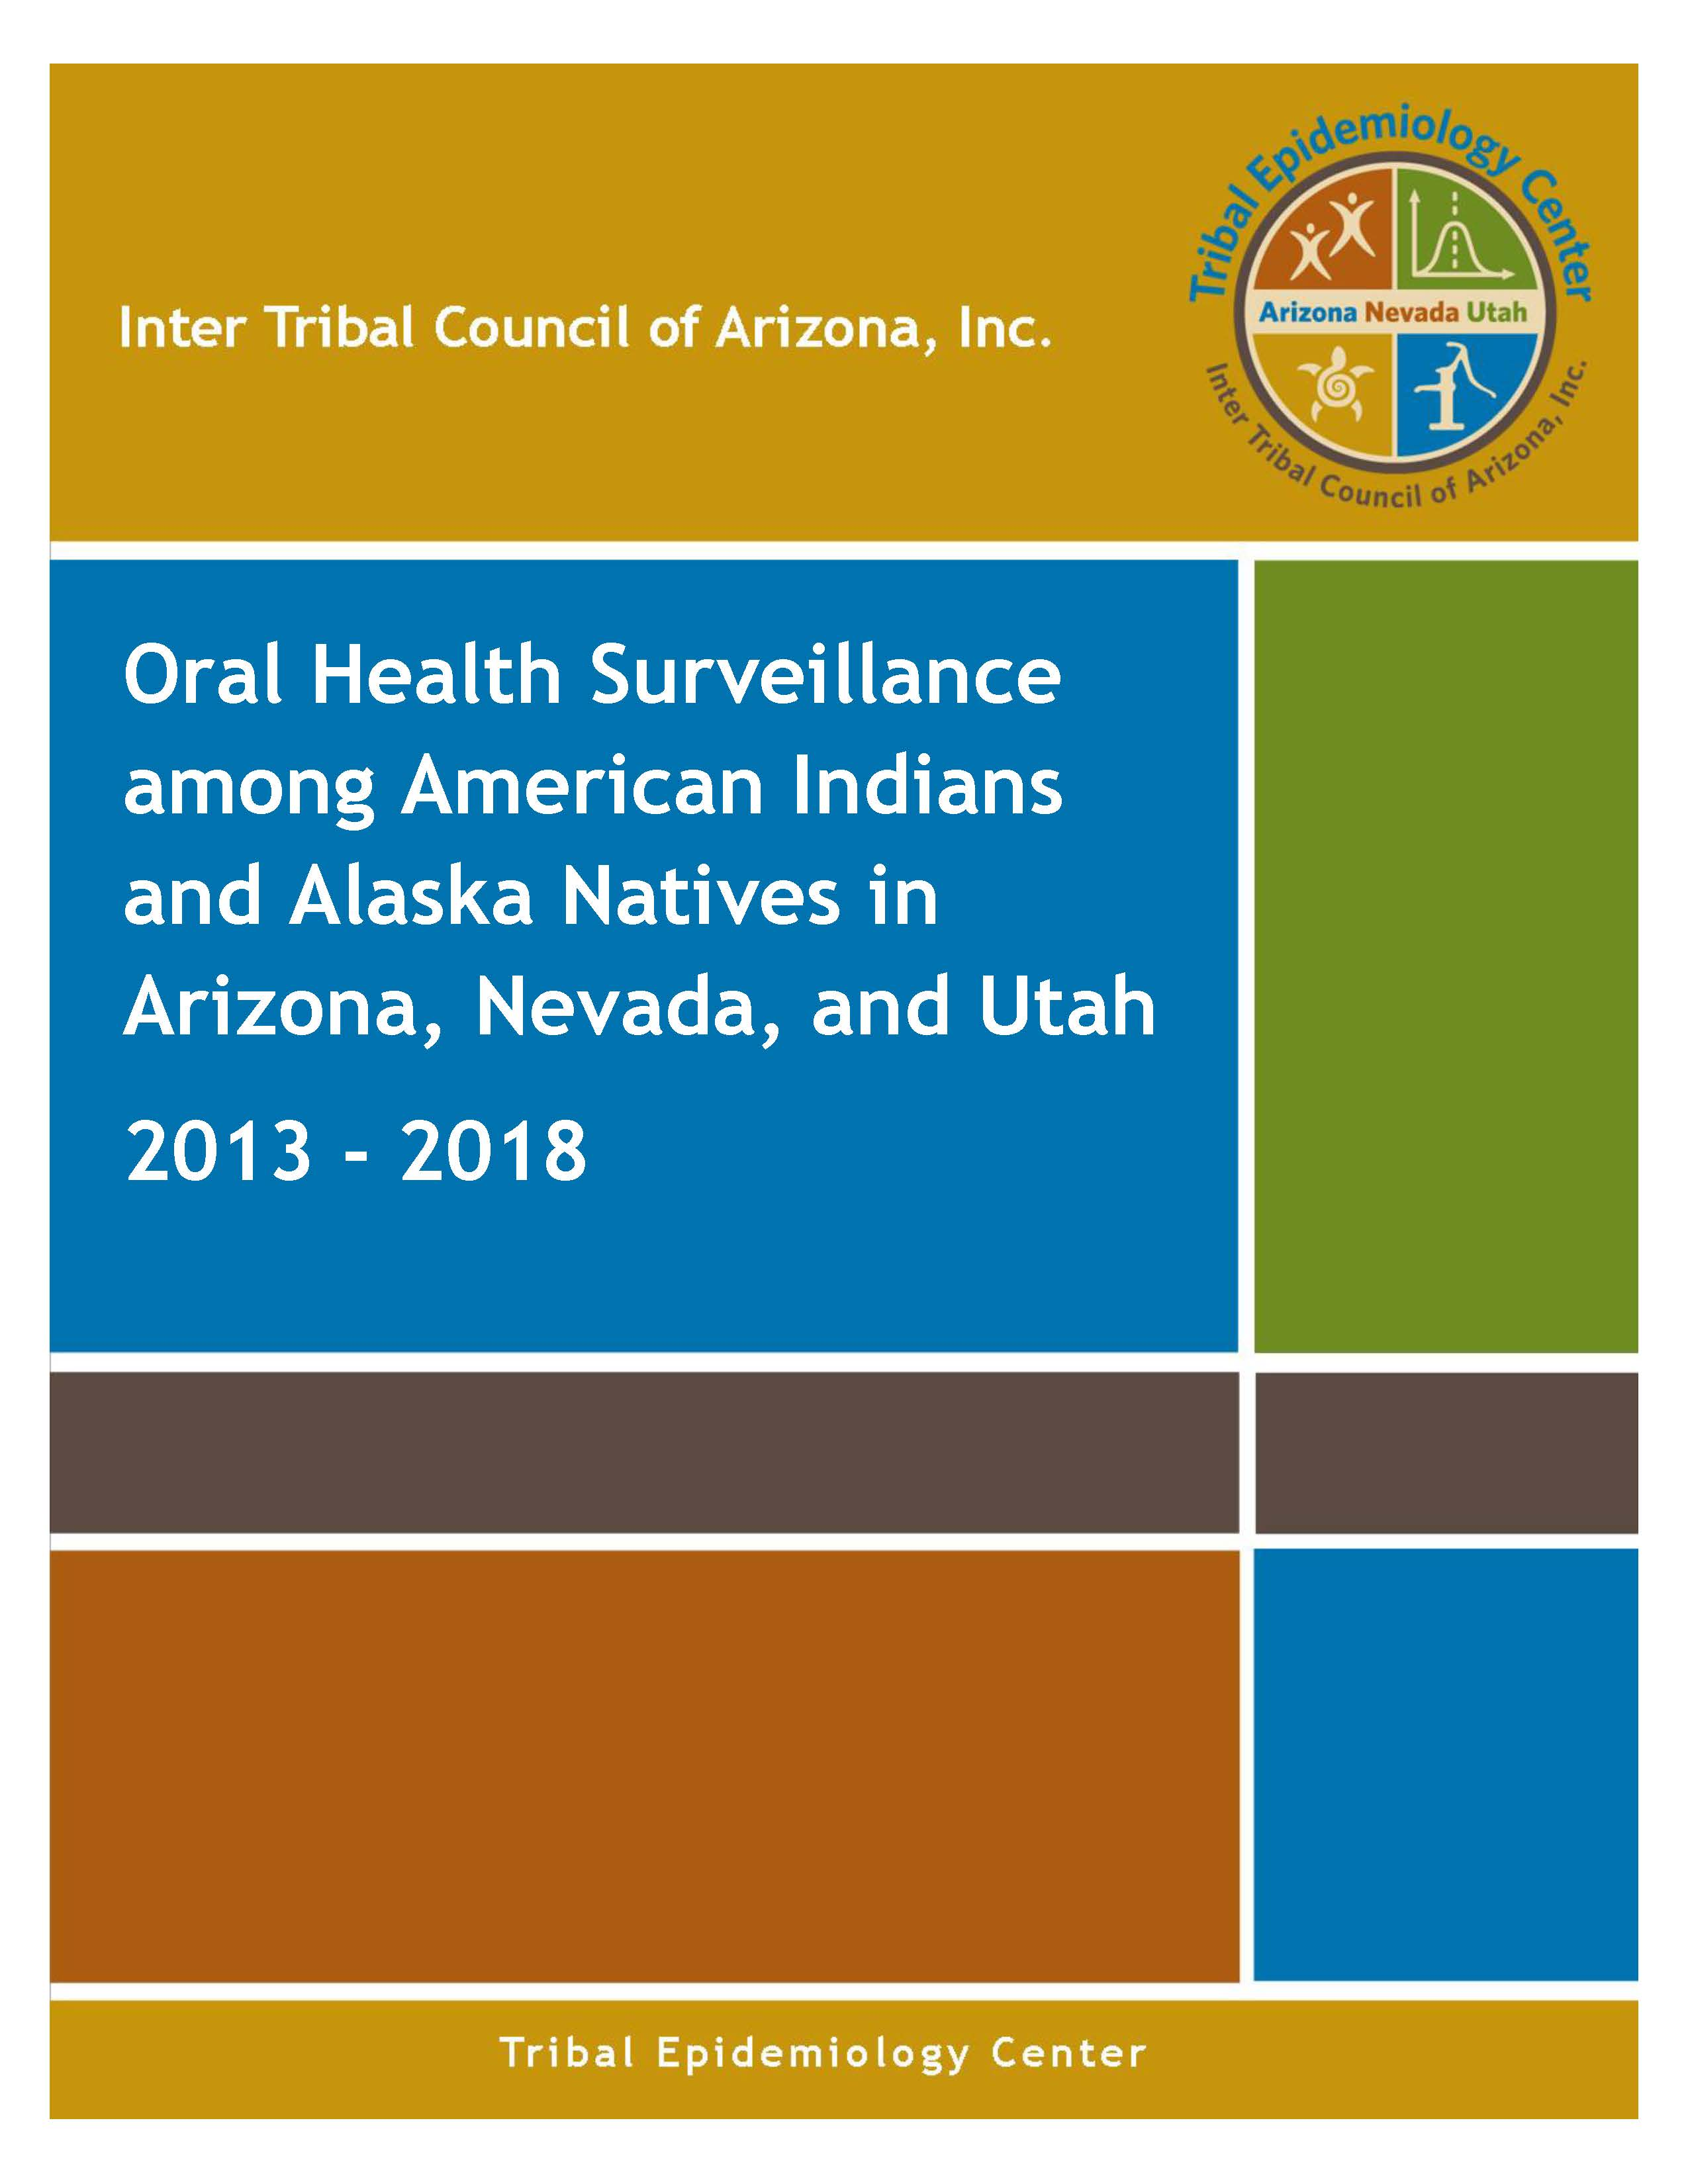 Oral Health Surveillance among American Indians and Alaska Natives in Arizona, Nevada, and Utah 2013-2018